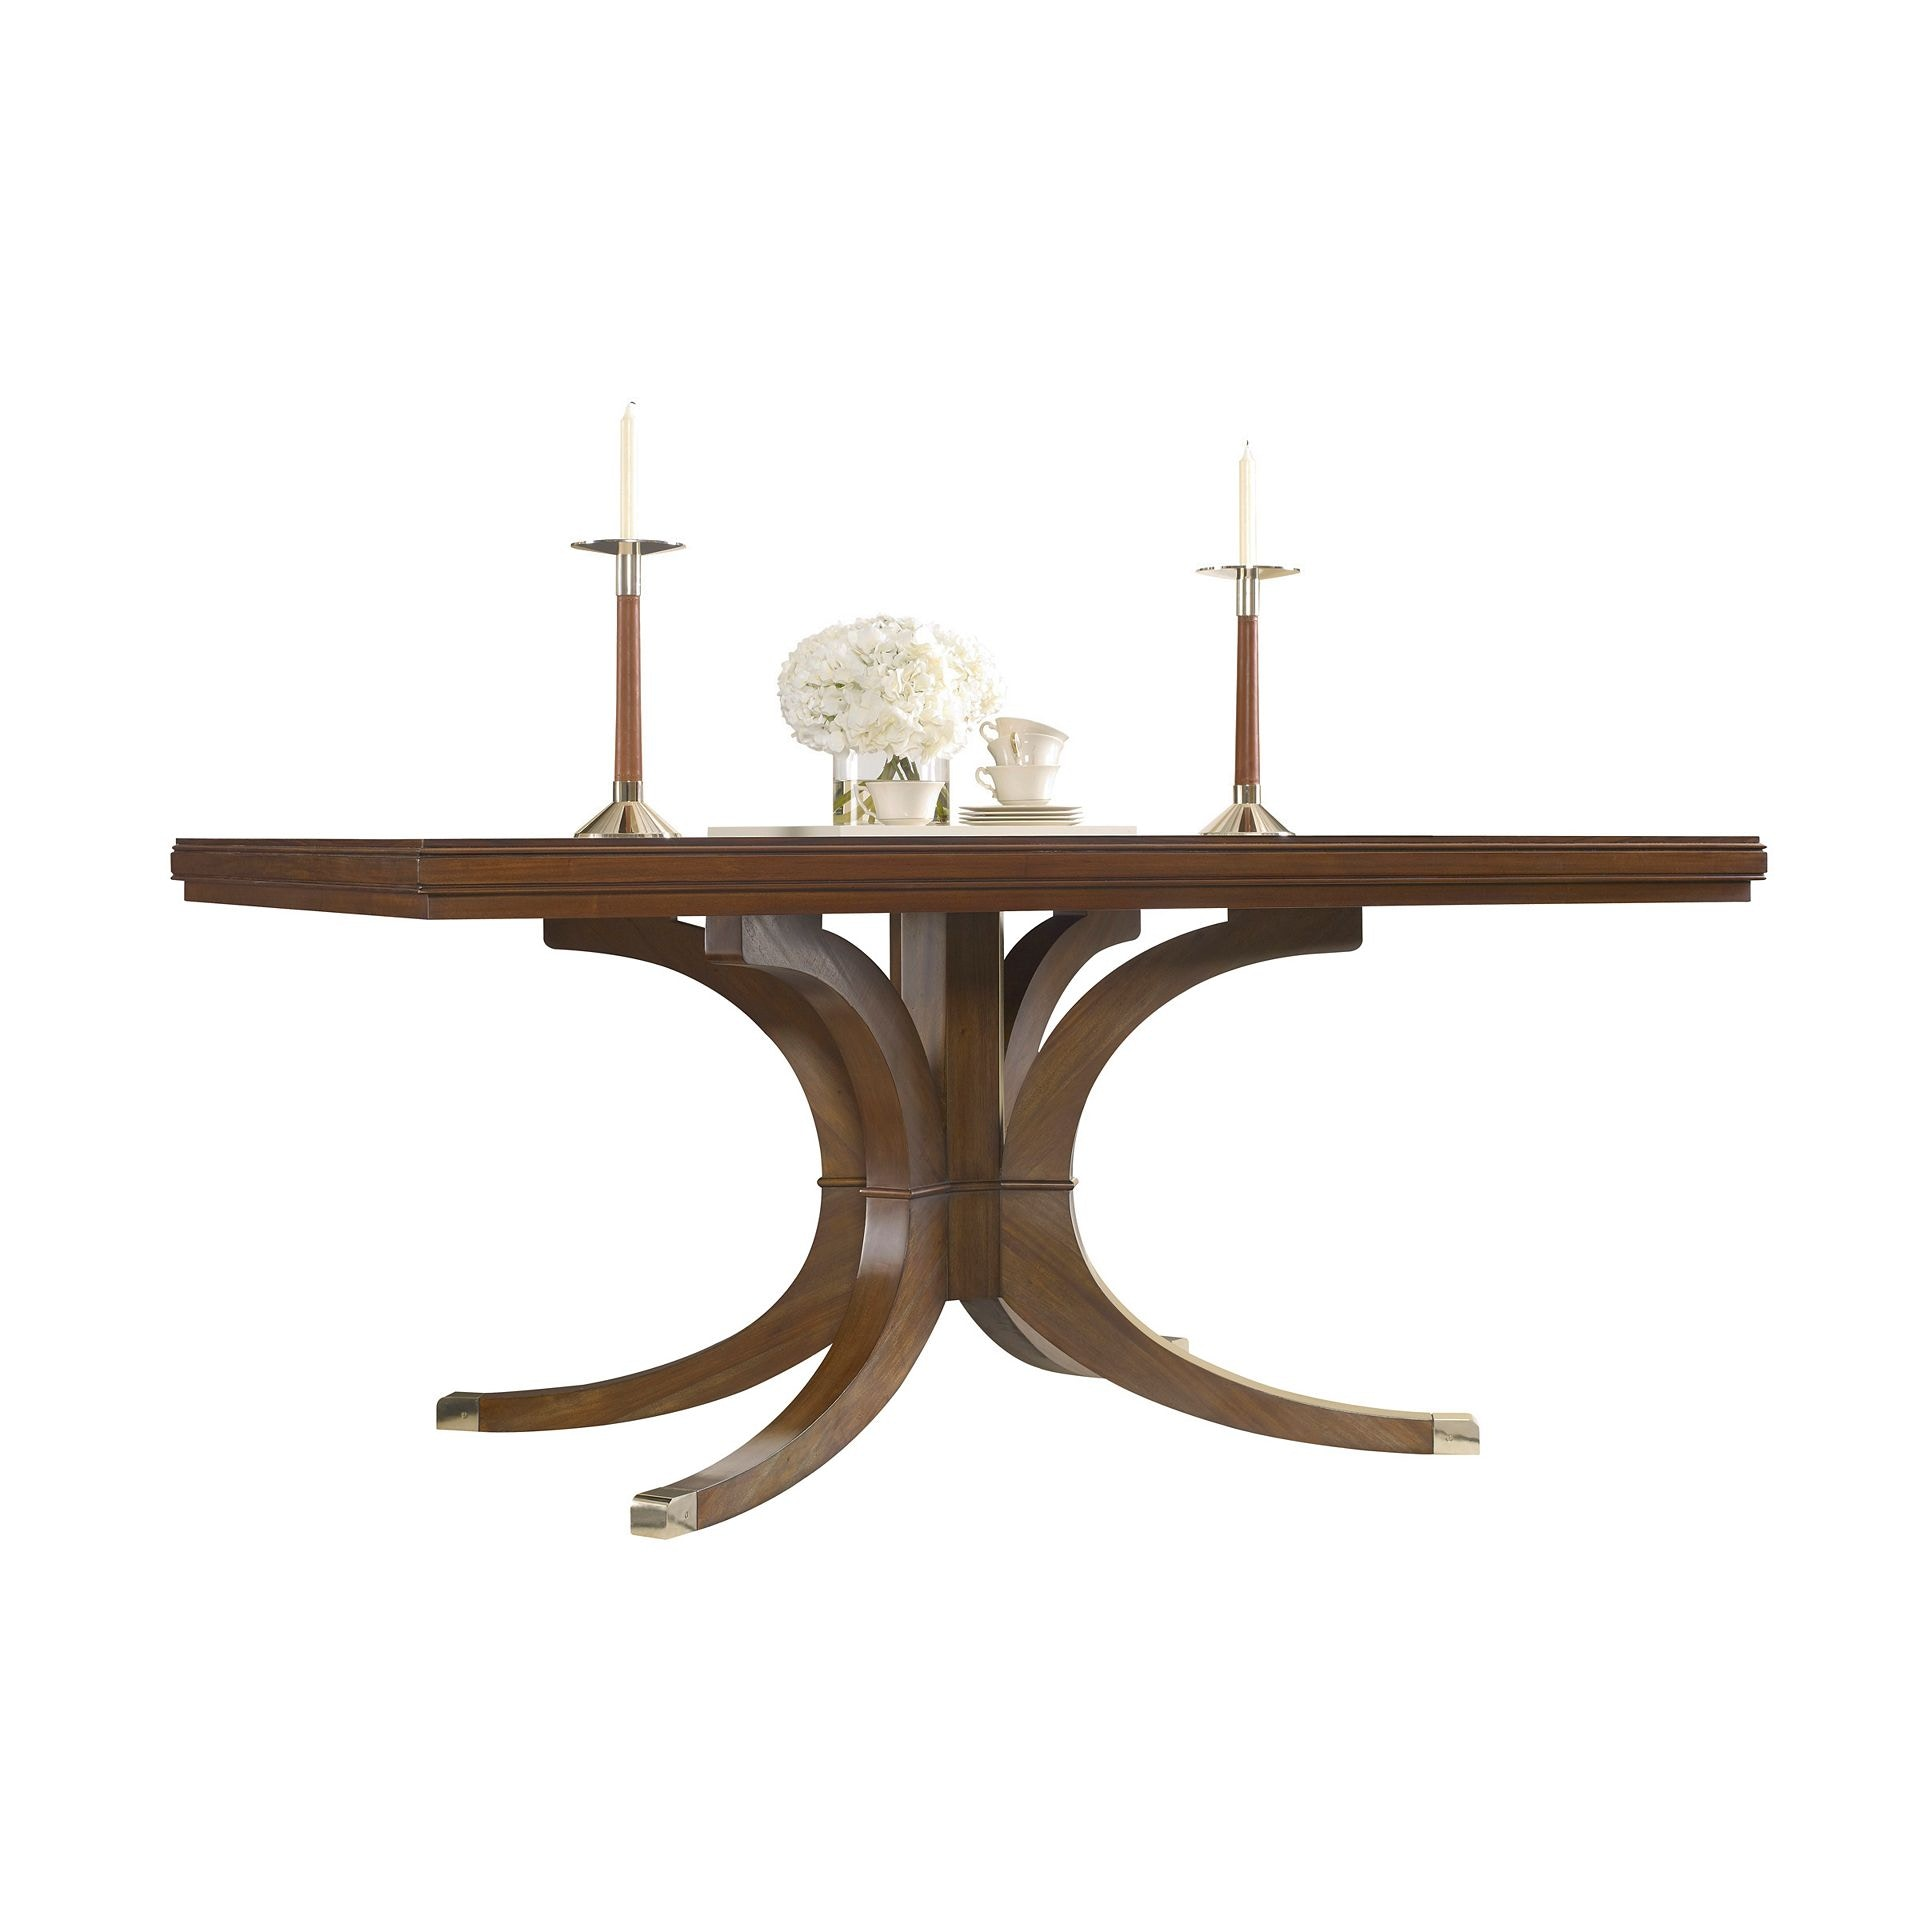 Henredon Furniture Modern English Dining Table 4200 20 399B / 4200 20